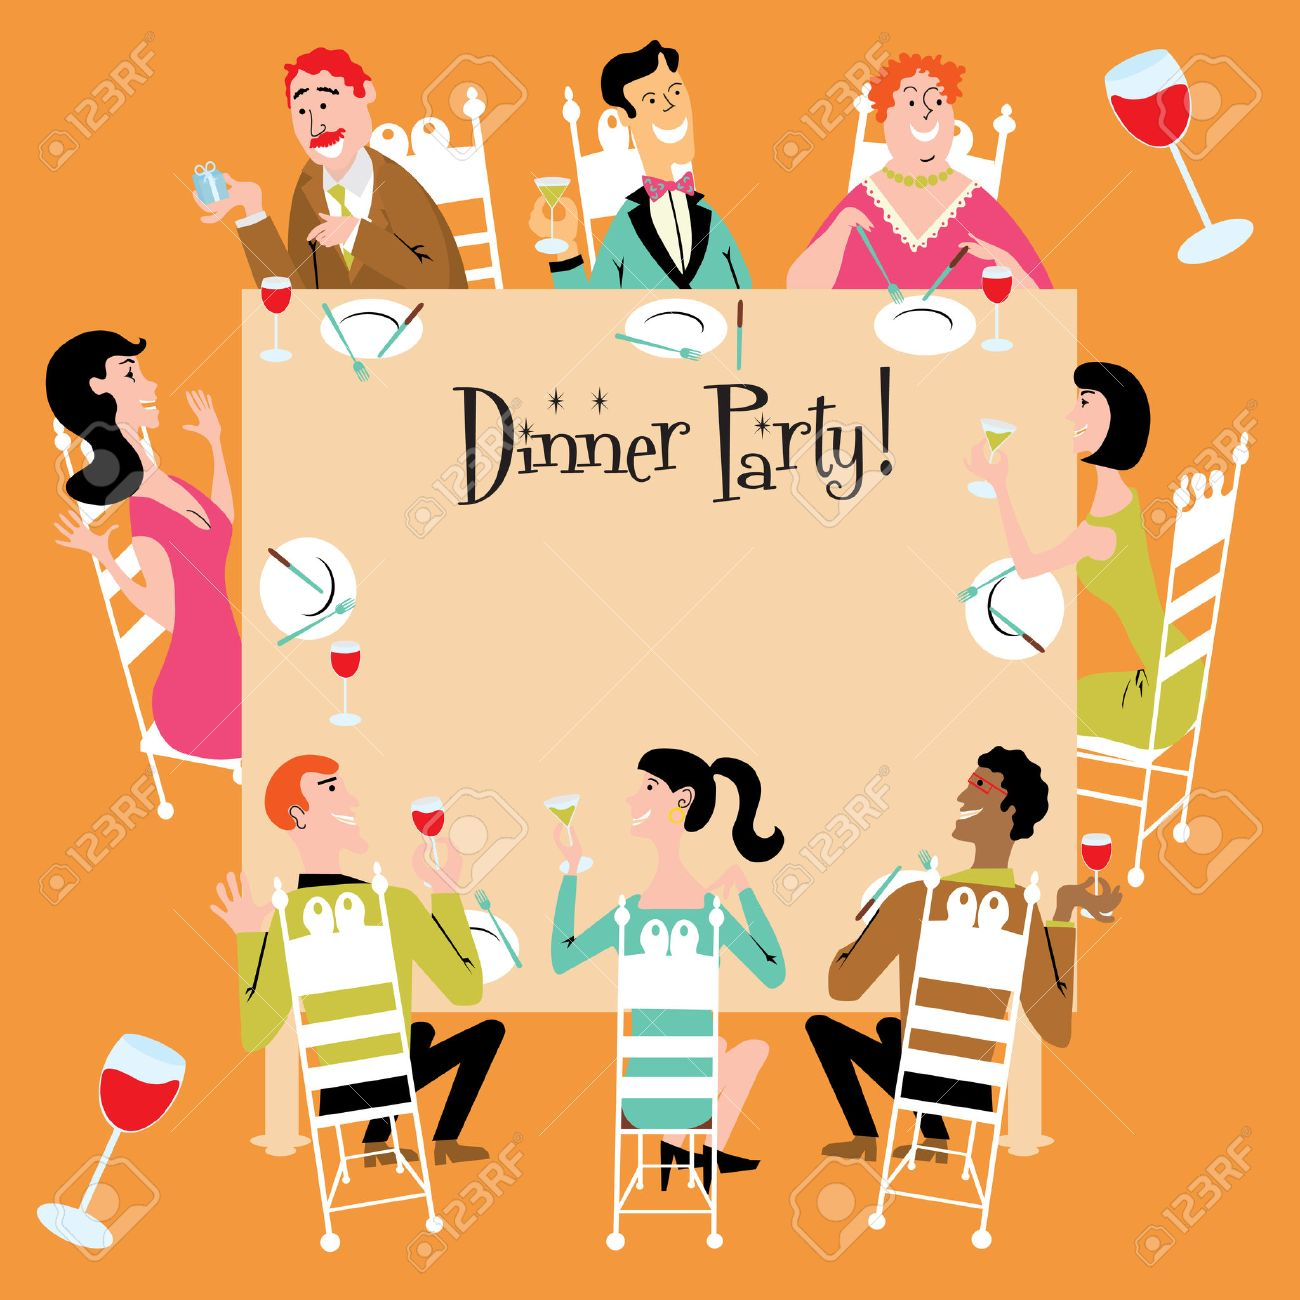 Dinner Party Invitation Royalty Free Cliparts Vectors And Stock